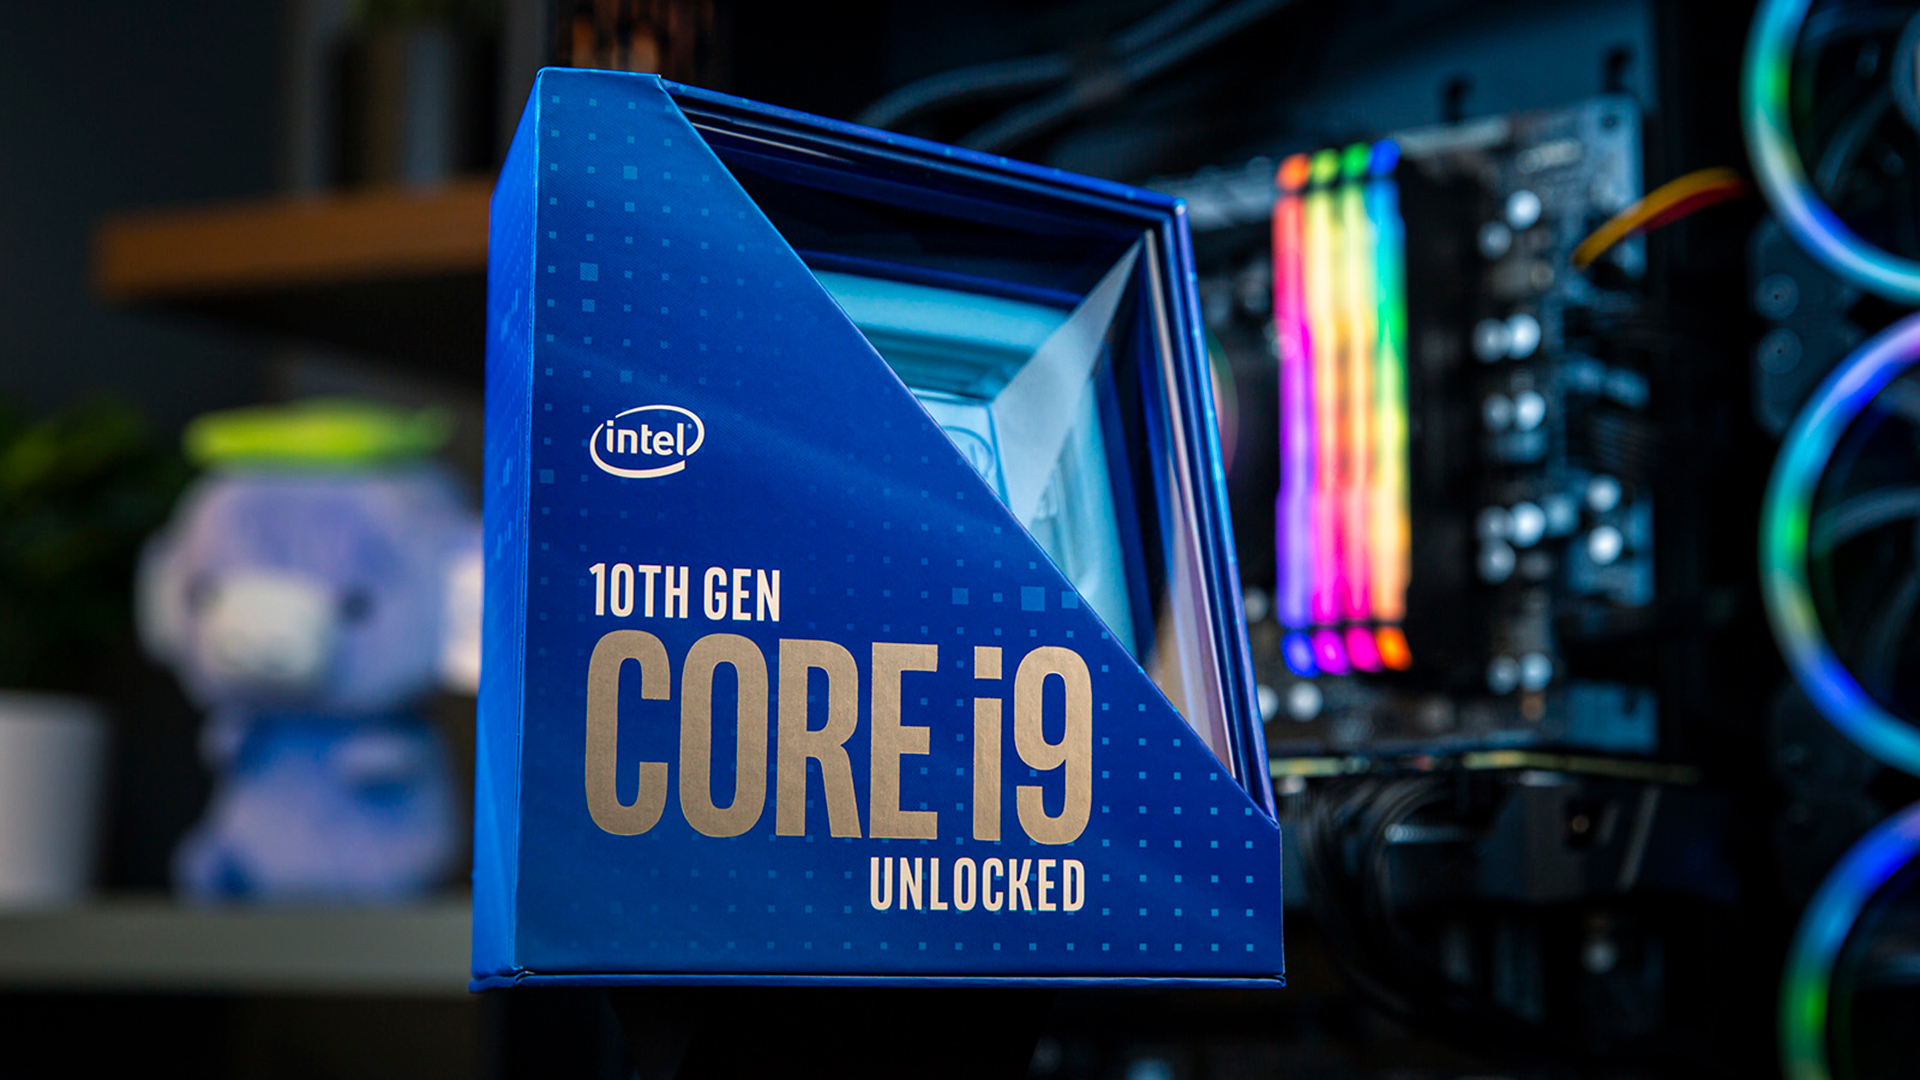 Intel's 10th Gen Core i9-10900K packs some serious power, but is it enough? Image: Intel.